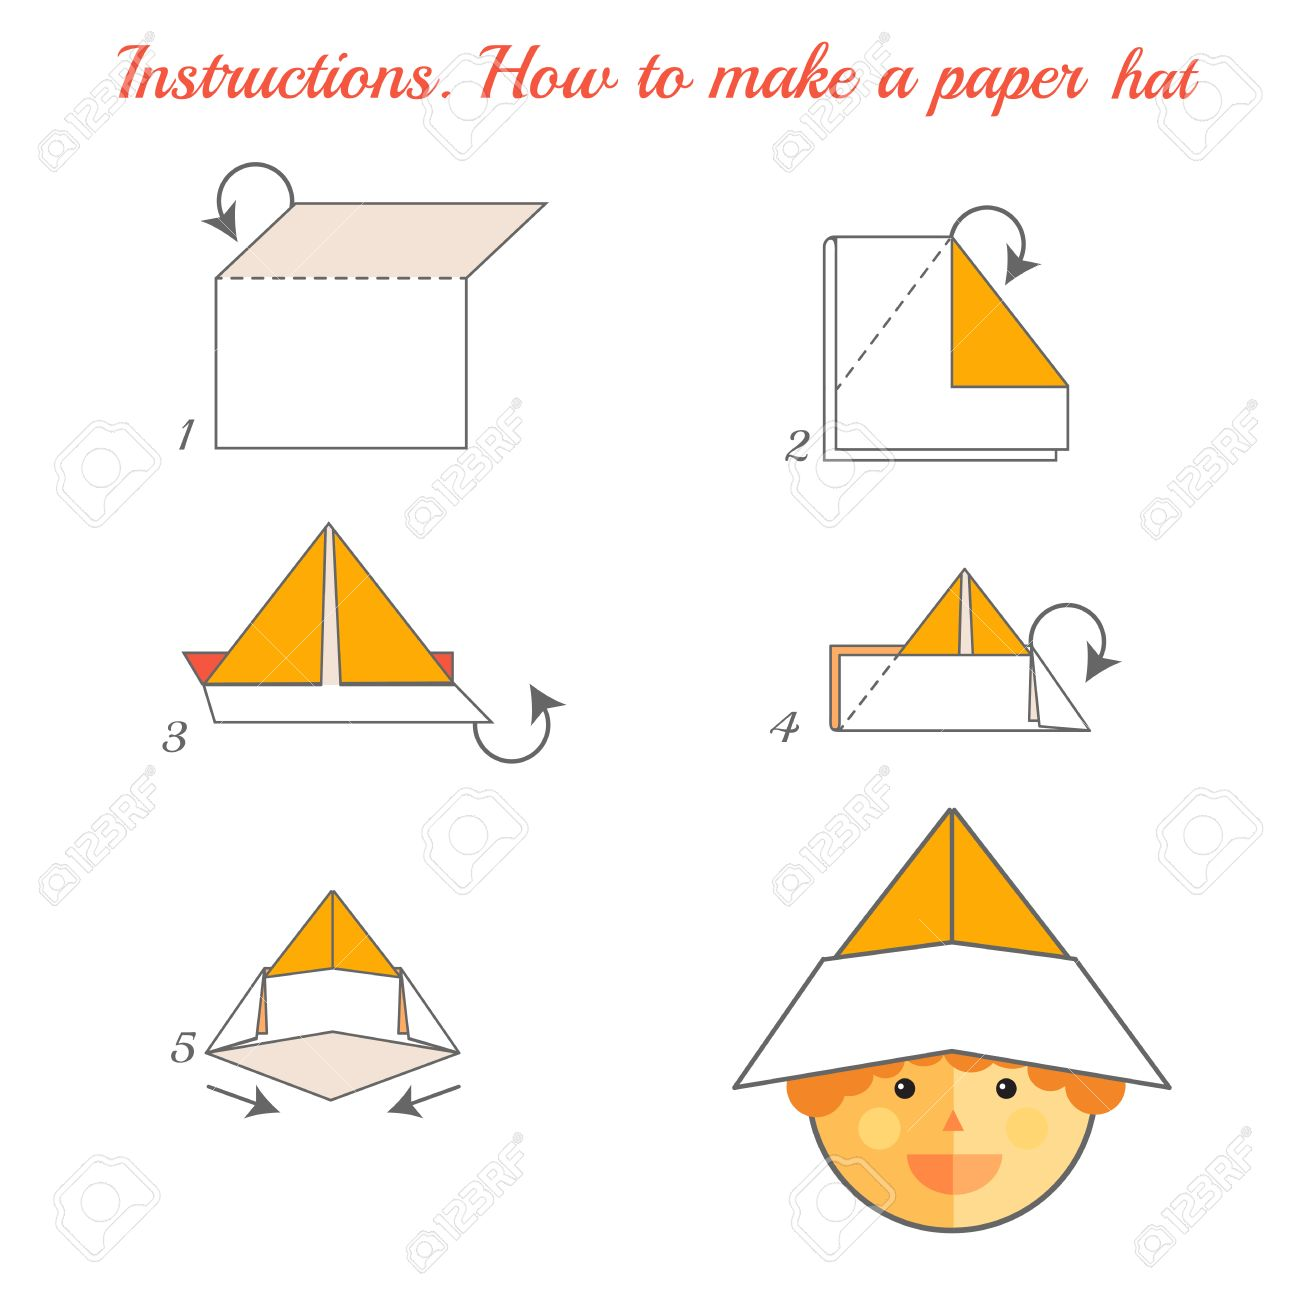 Instructions How To Make Paper Hat Tutorial Made Of Step By